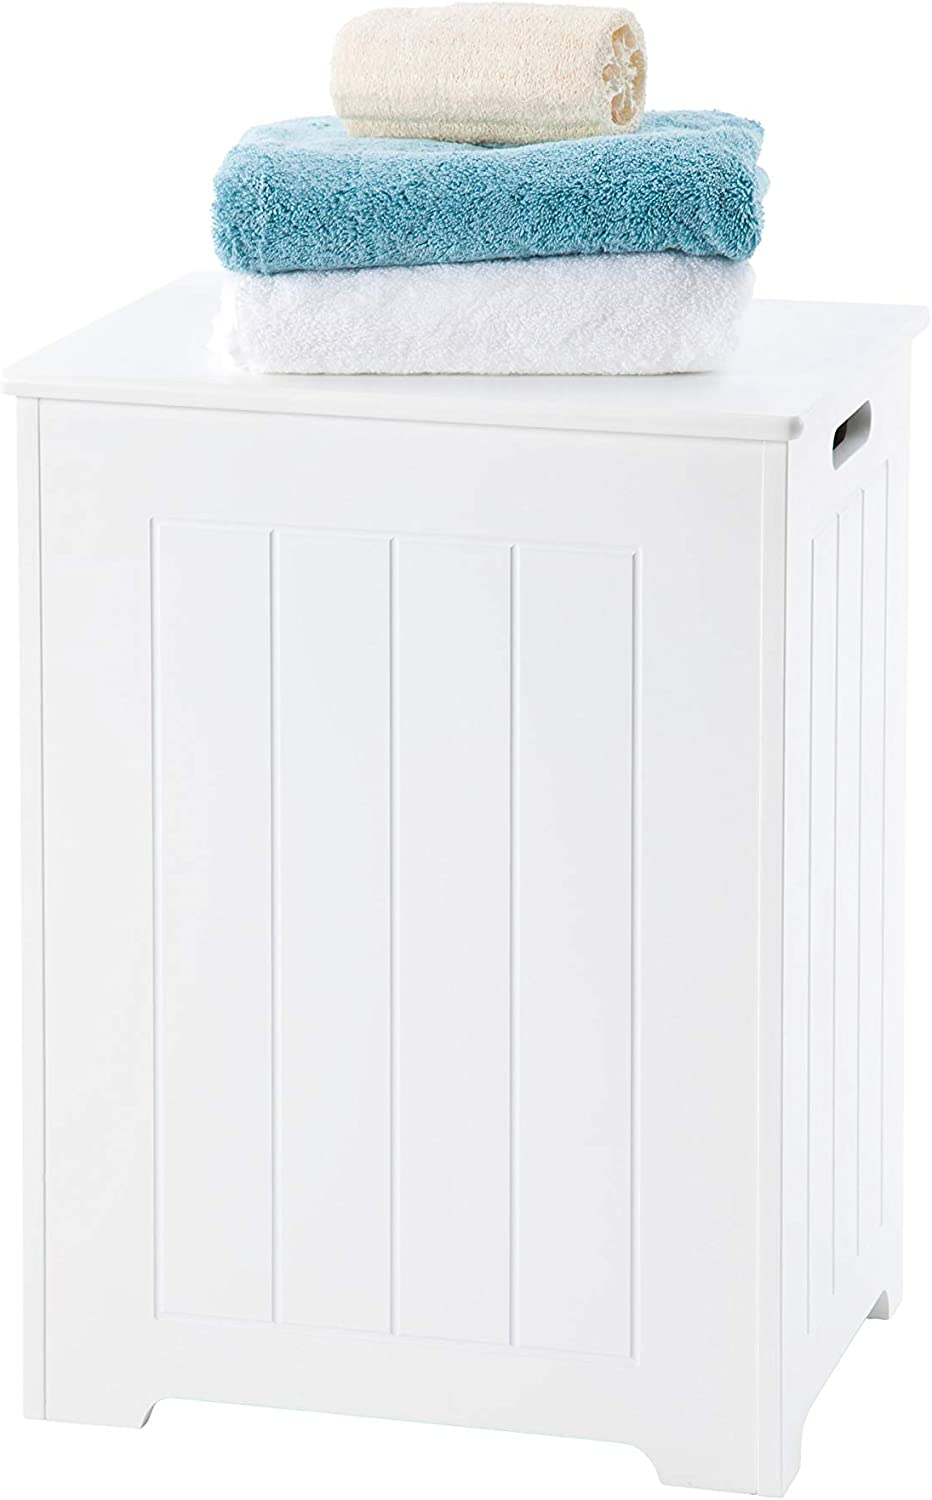 White Wooden Laundry Bin, Bathroom Storage Cabinet - tongue and groove style